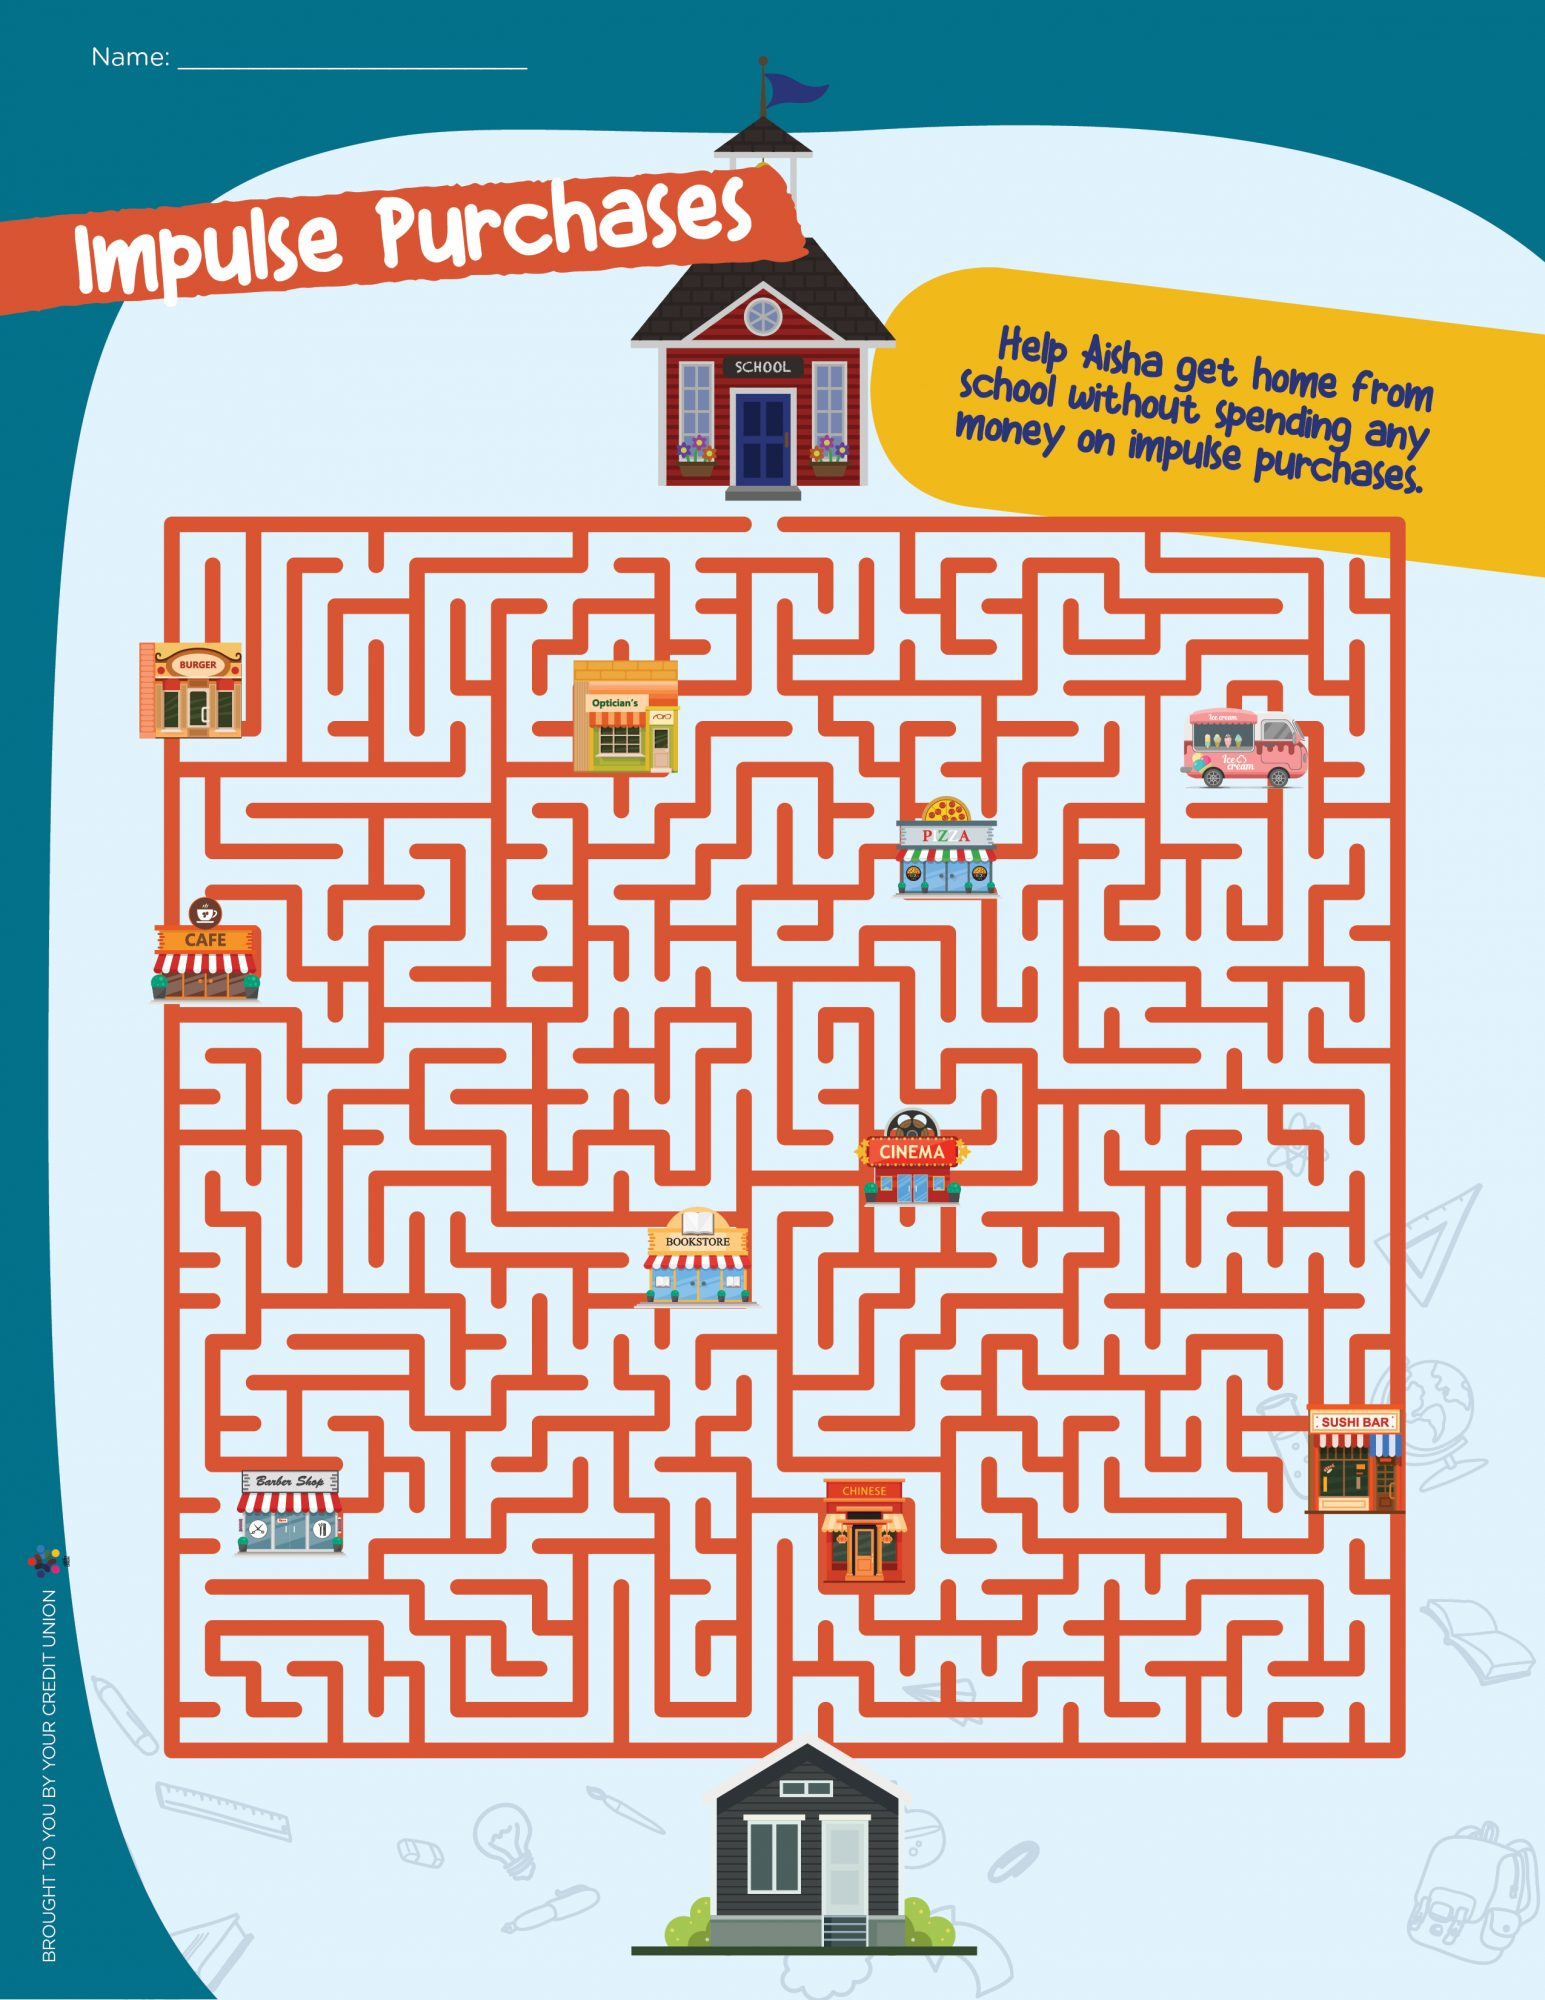 Help Aisha get home from school maze